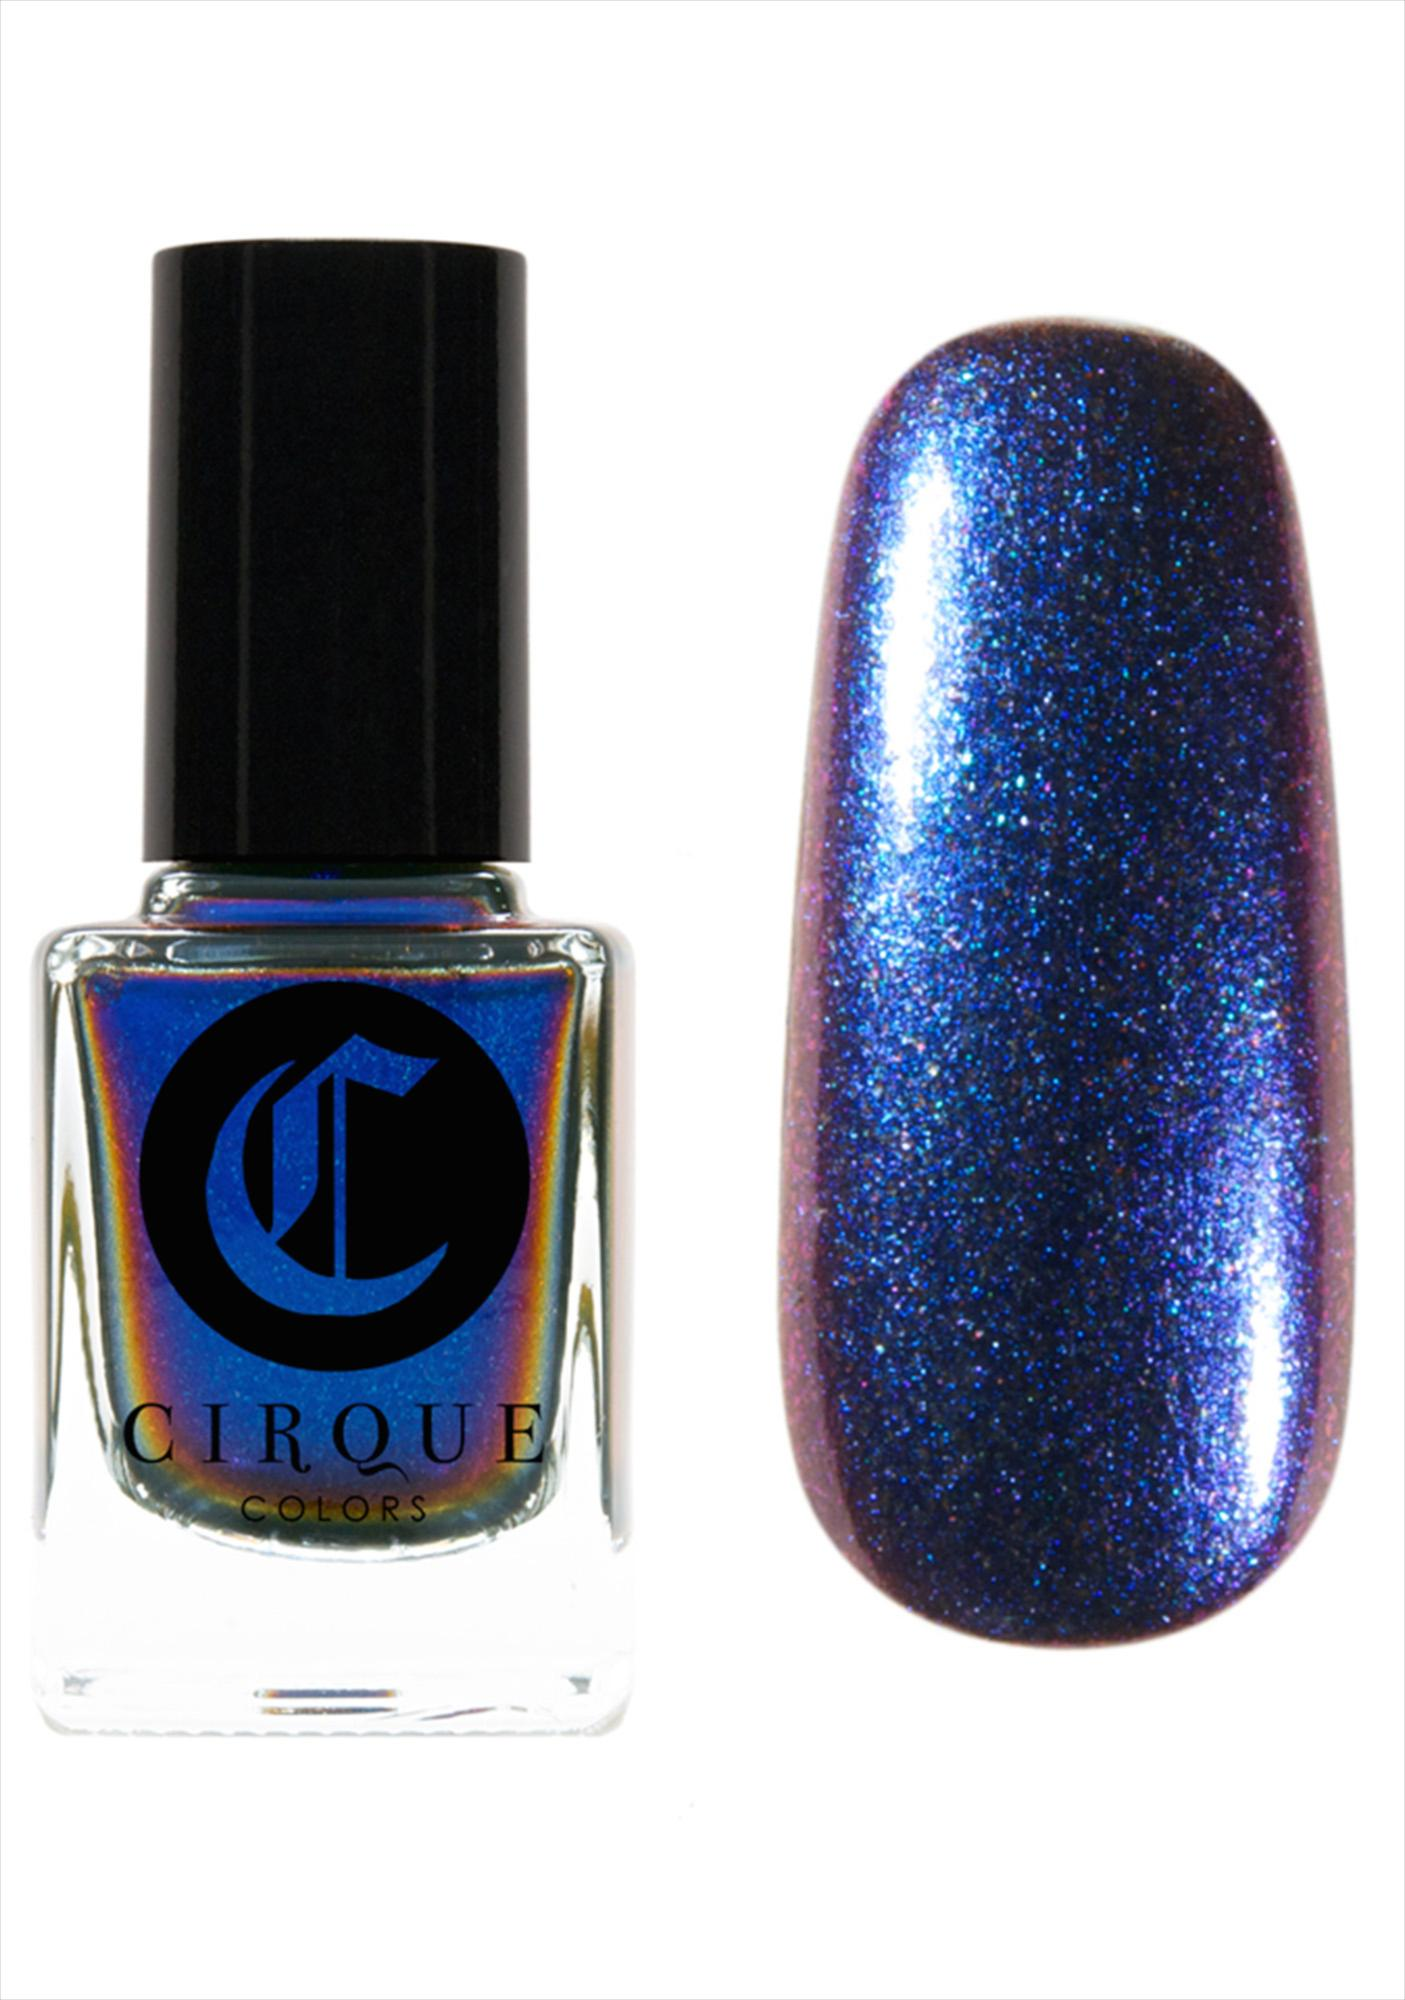 Cirque Colors Version Infinity Nail Polish